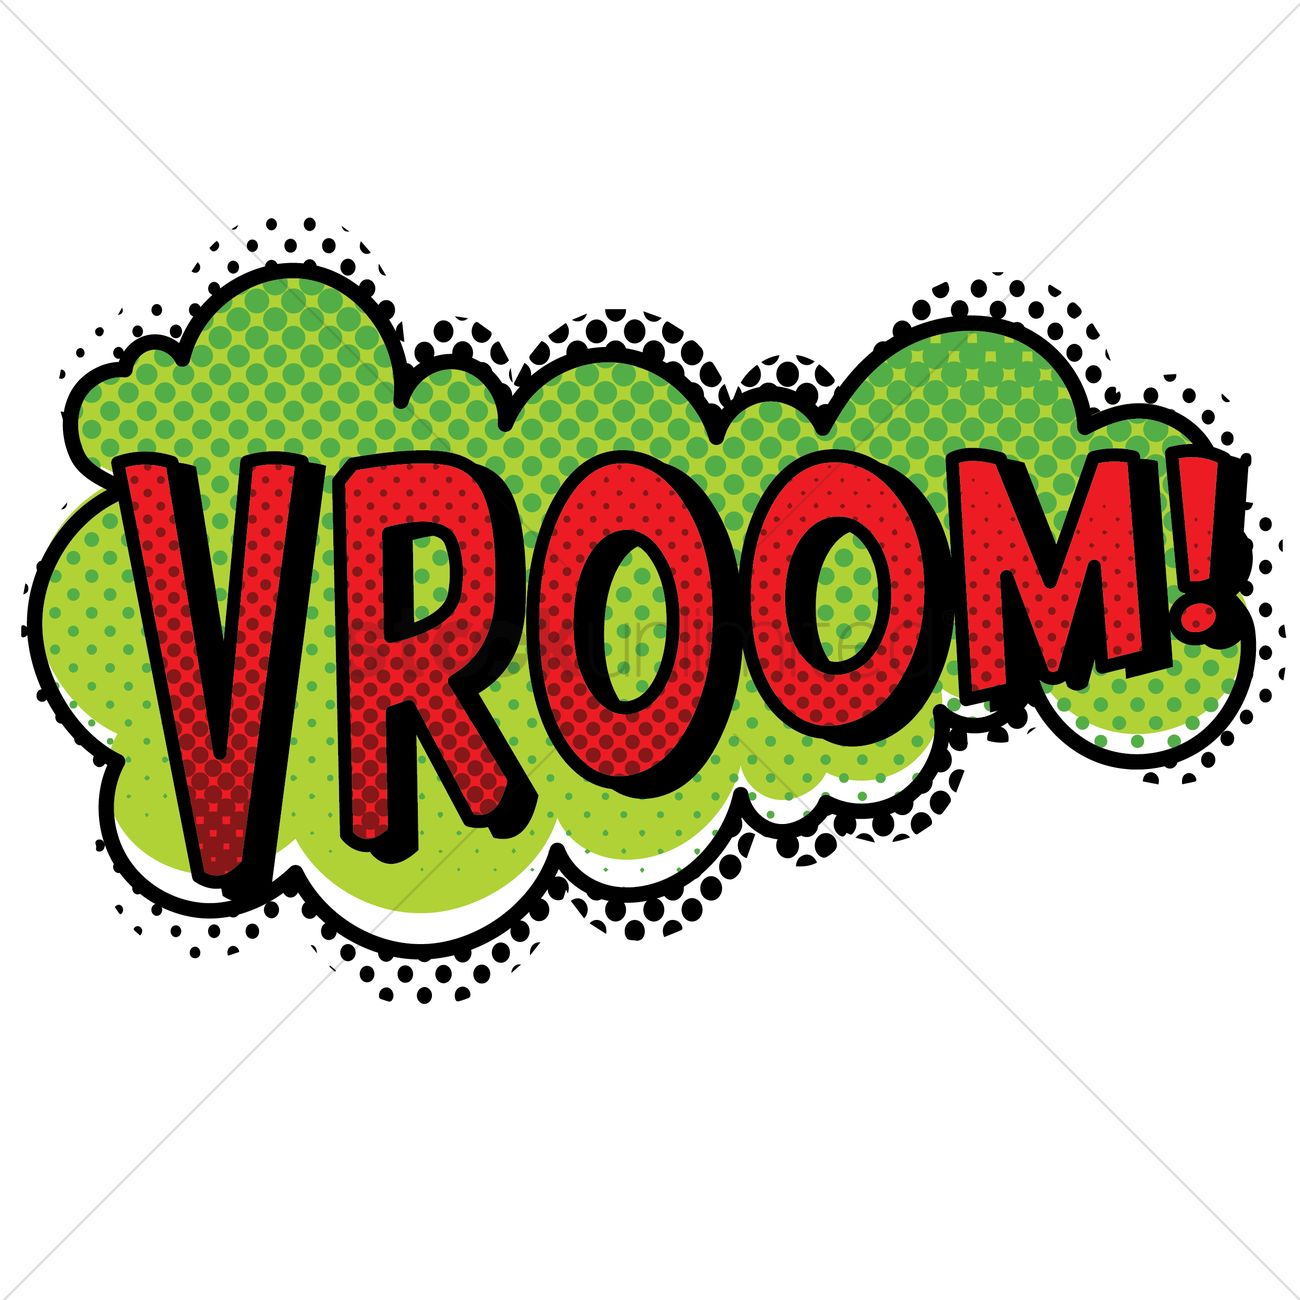 Vroom vroom sign clipart free clipart transparent library Vroom text with comic effect Vector Image - 1823033 ... clipart transparent library